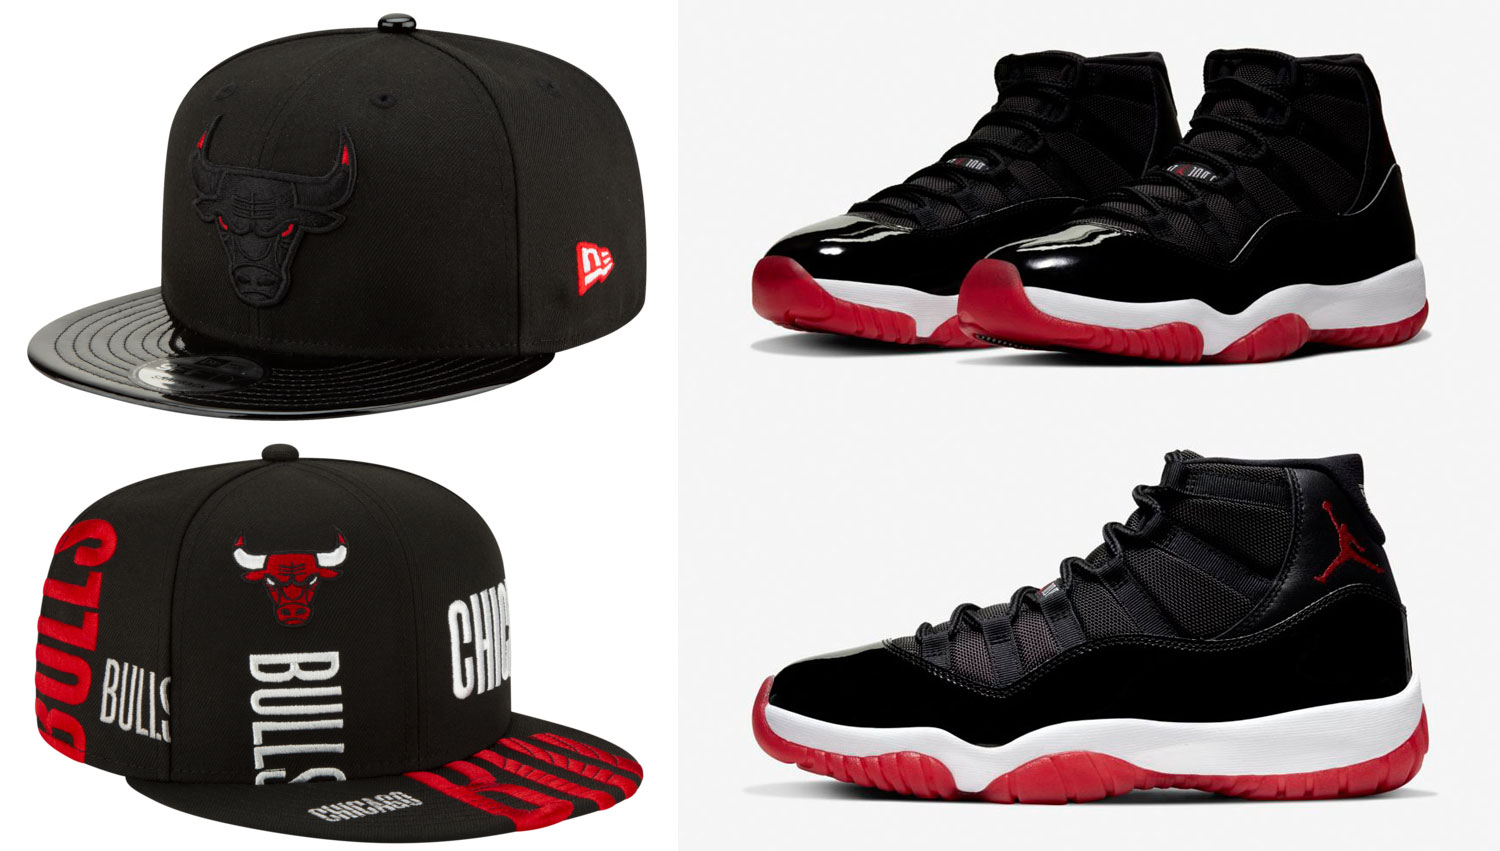 air-jordan-11-bred-new-era-bulls-snapback-hats